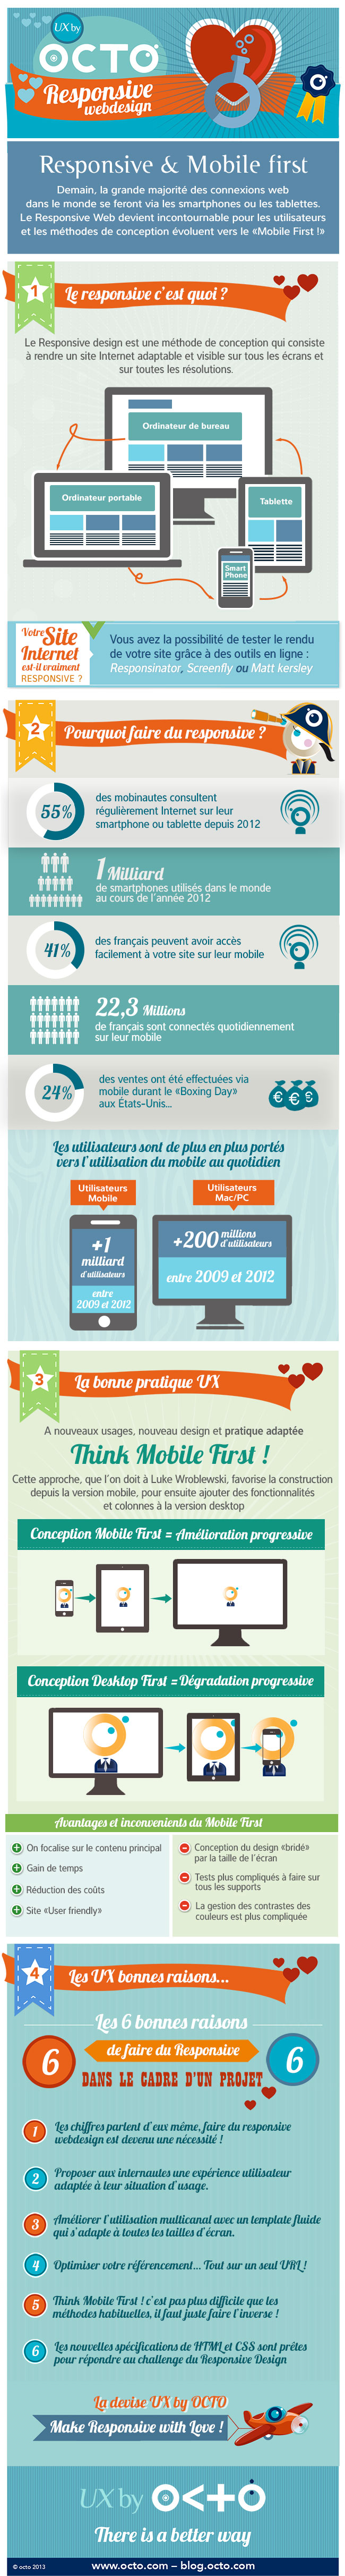 responsive-mobile-first-ux2